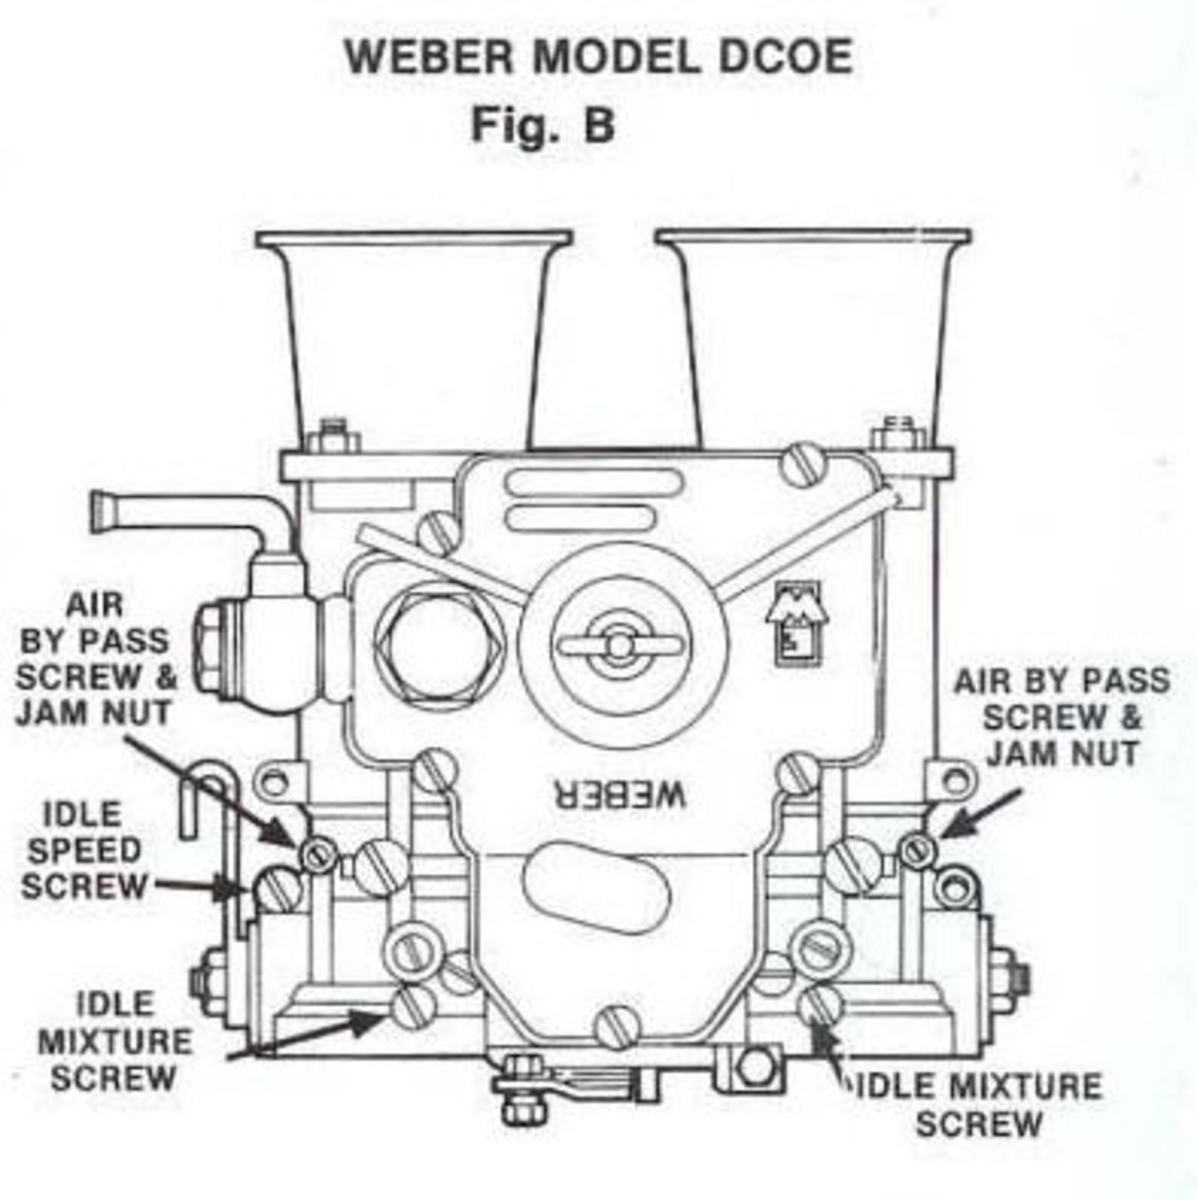 The Chevrolet Cosworth Vega Engine with Weber Side Draft